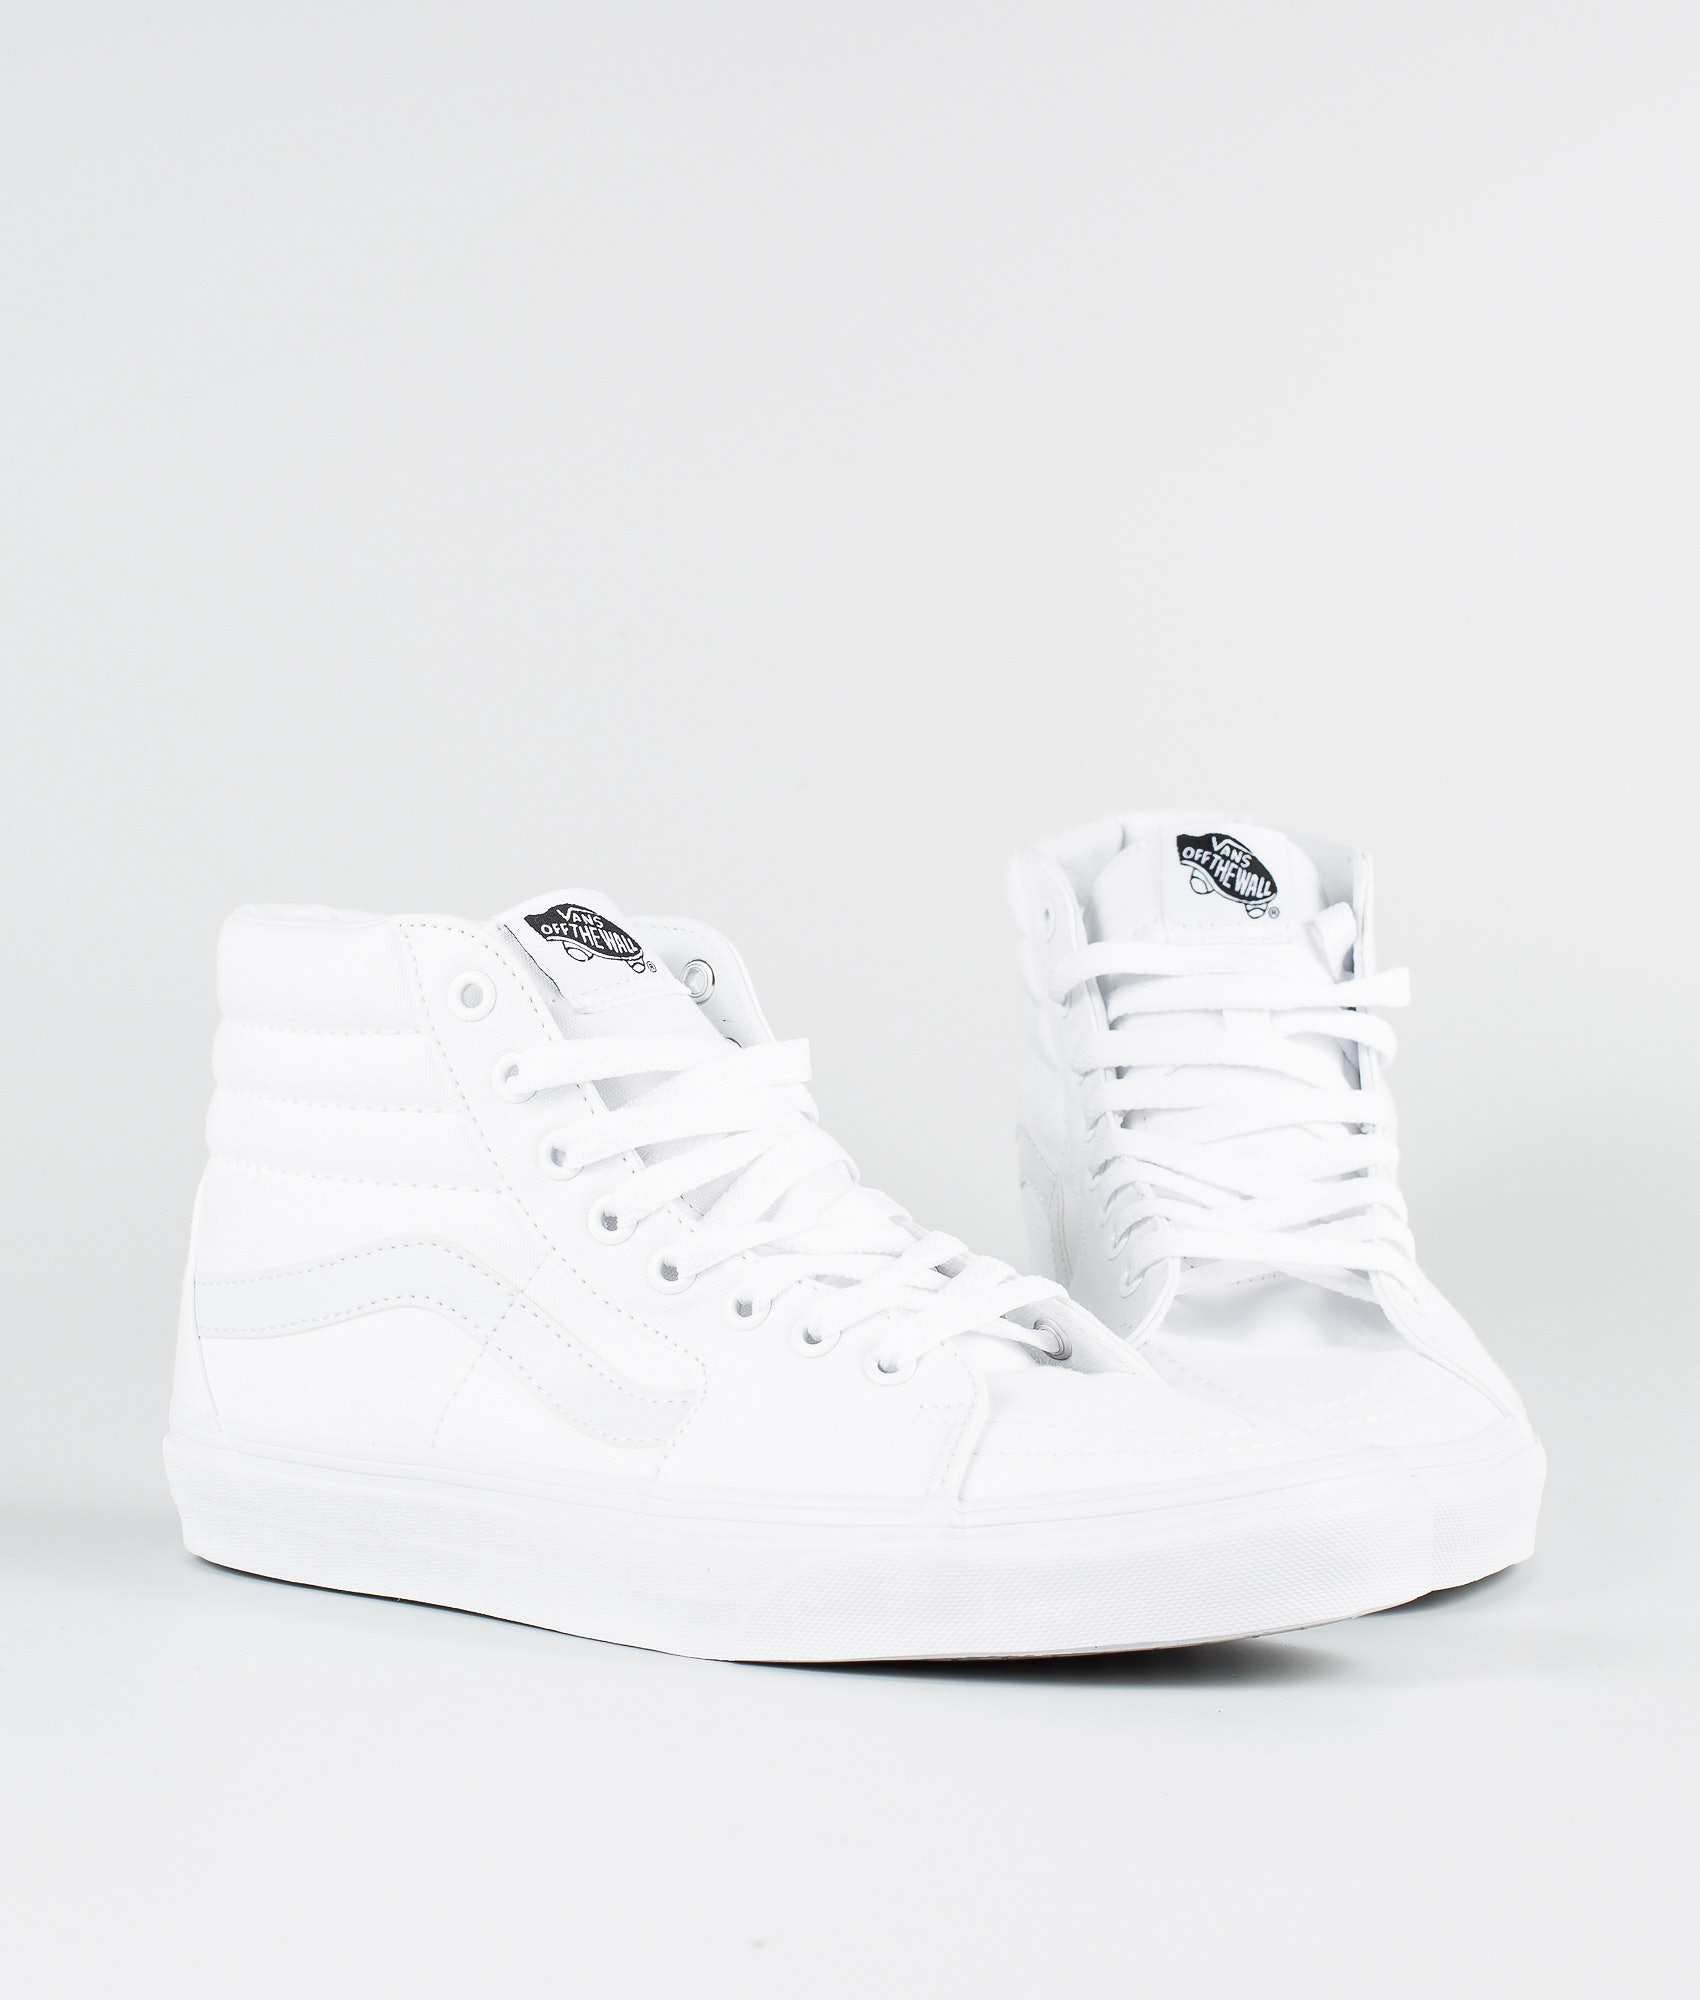 c3aee3d631 Vans Sk8-Hi Shoes True White - Ridestore.com